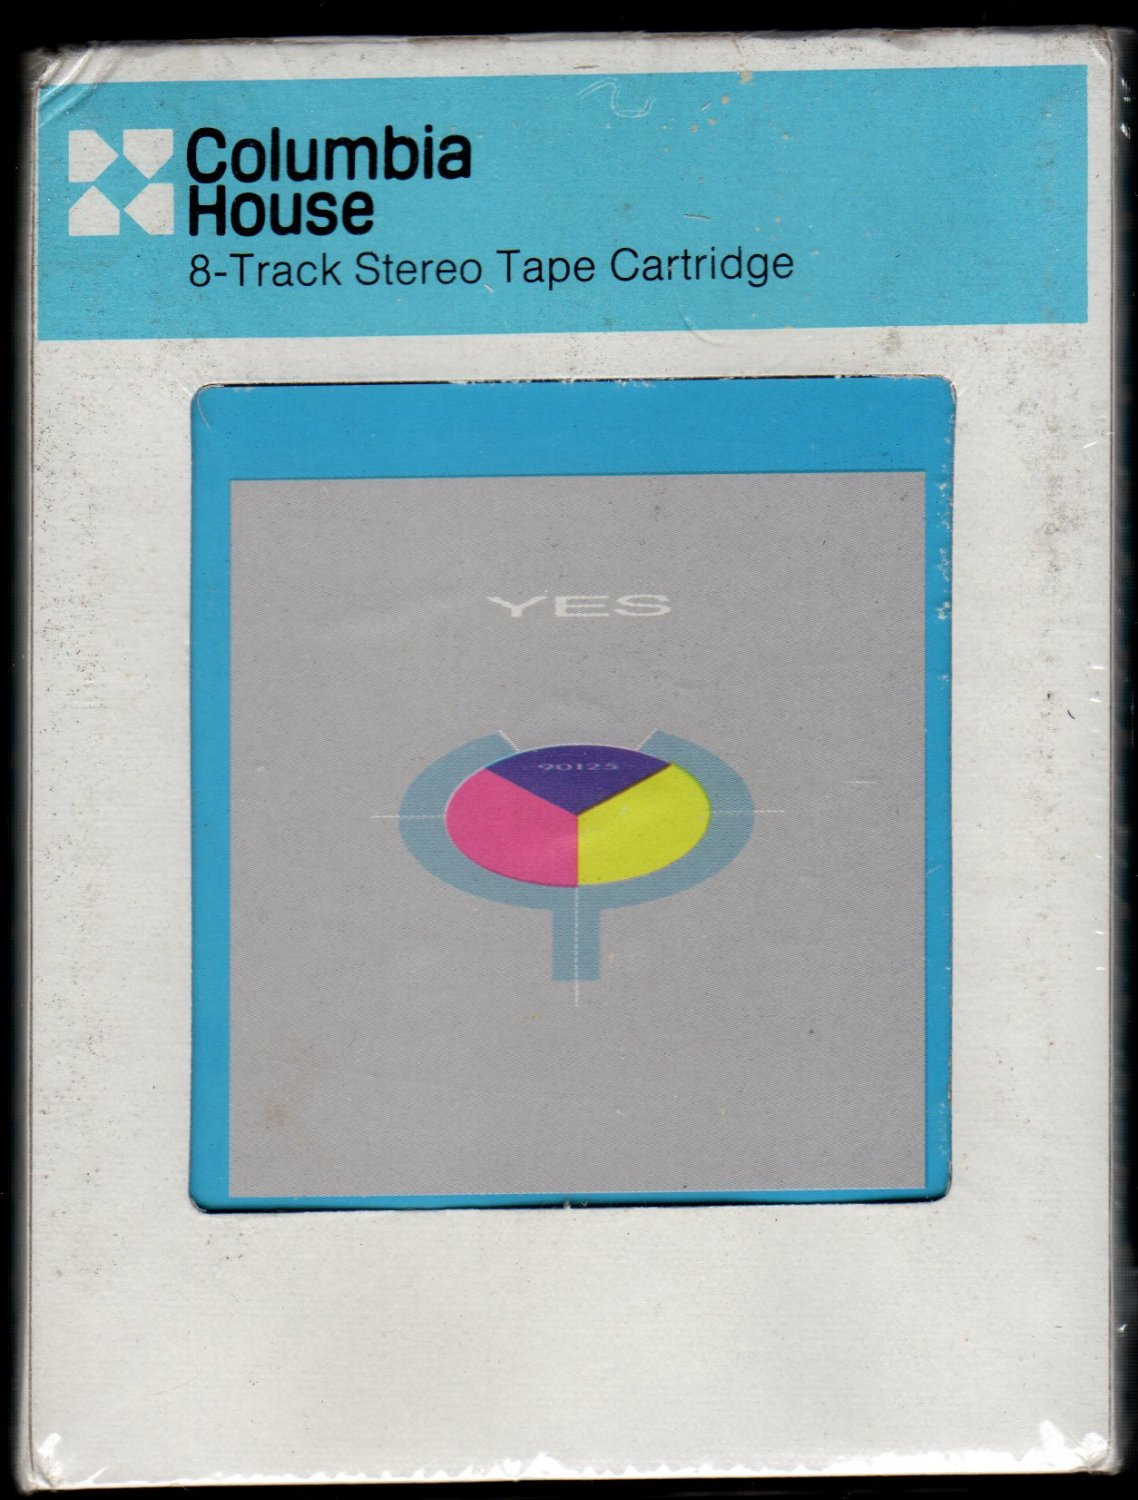 Yes - 90125 1983 CRC ATCO Sealed A45 8-TRACK TAPE